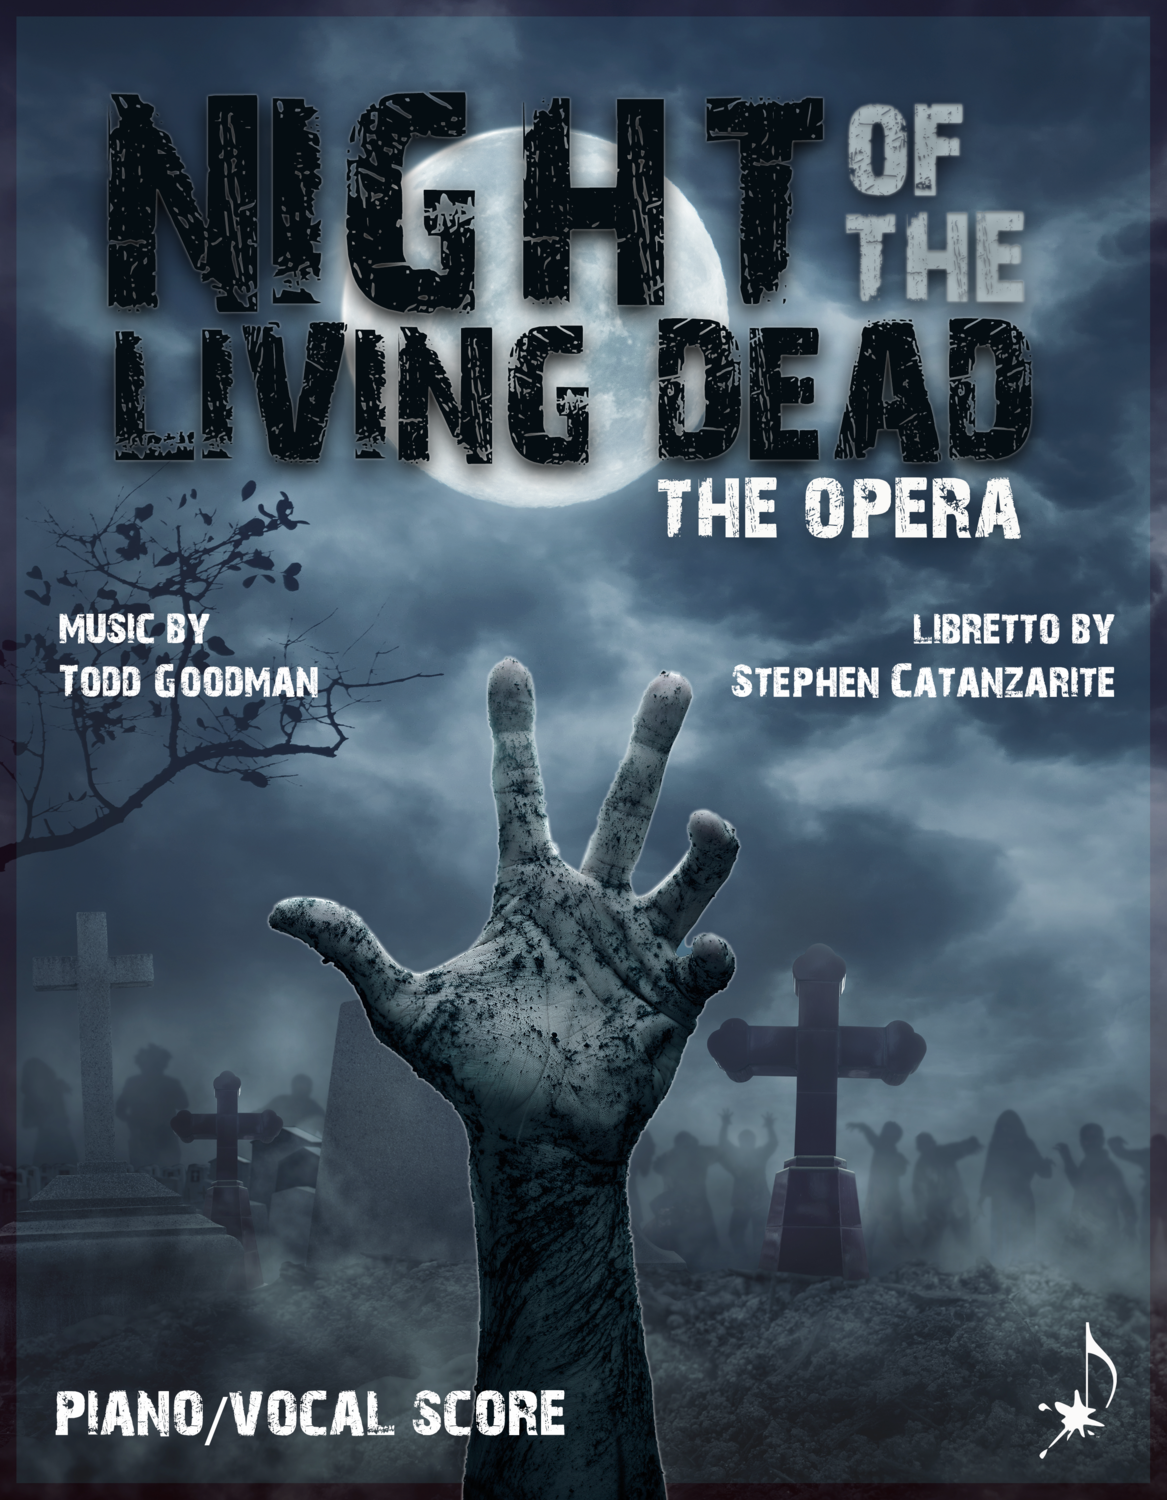 Night of the Living Dead, the opera - PIANO / VOCAL, by Todd Goodman